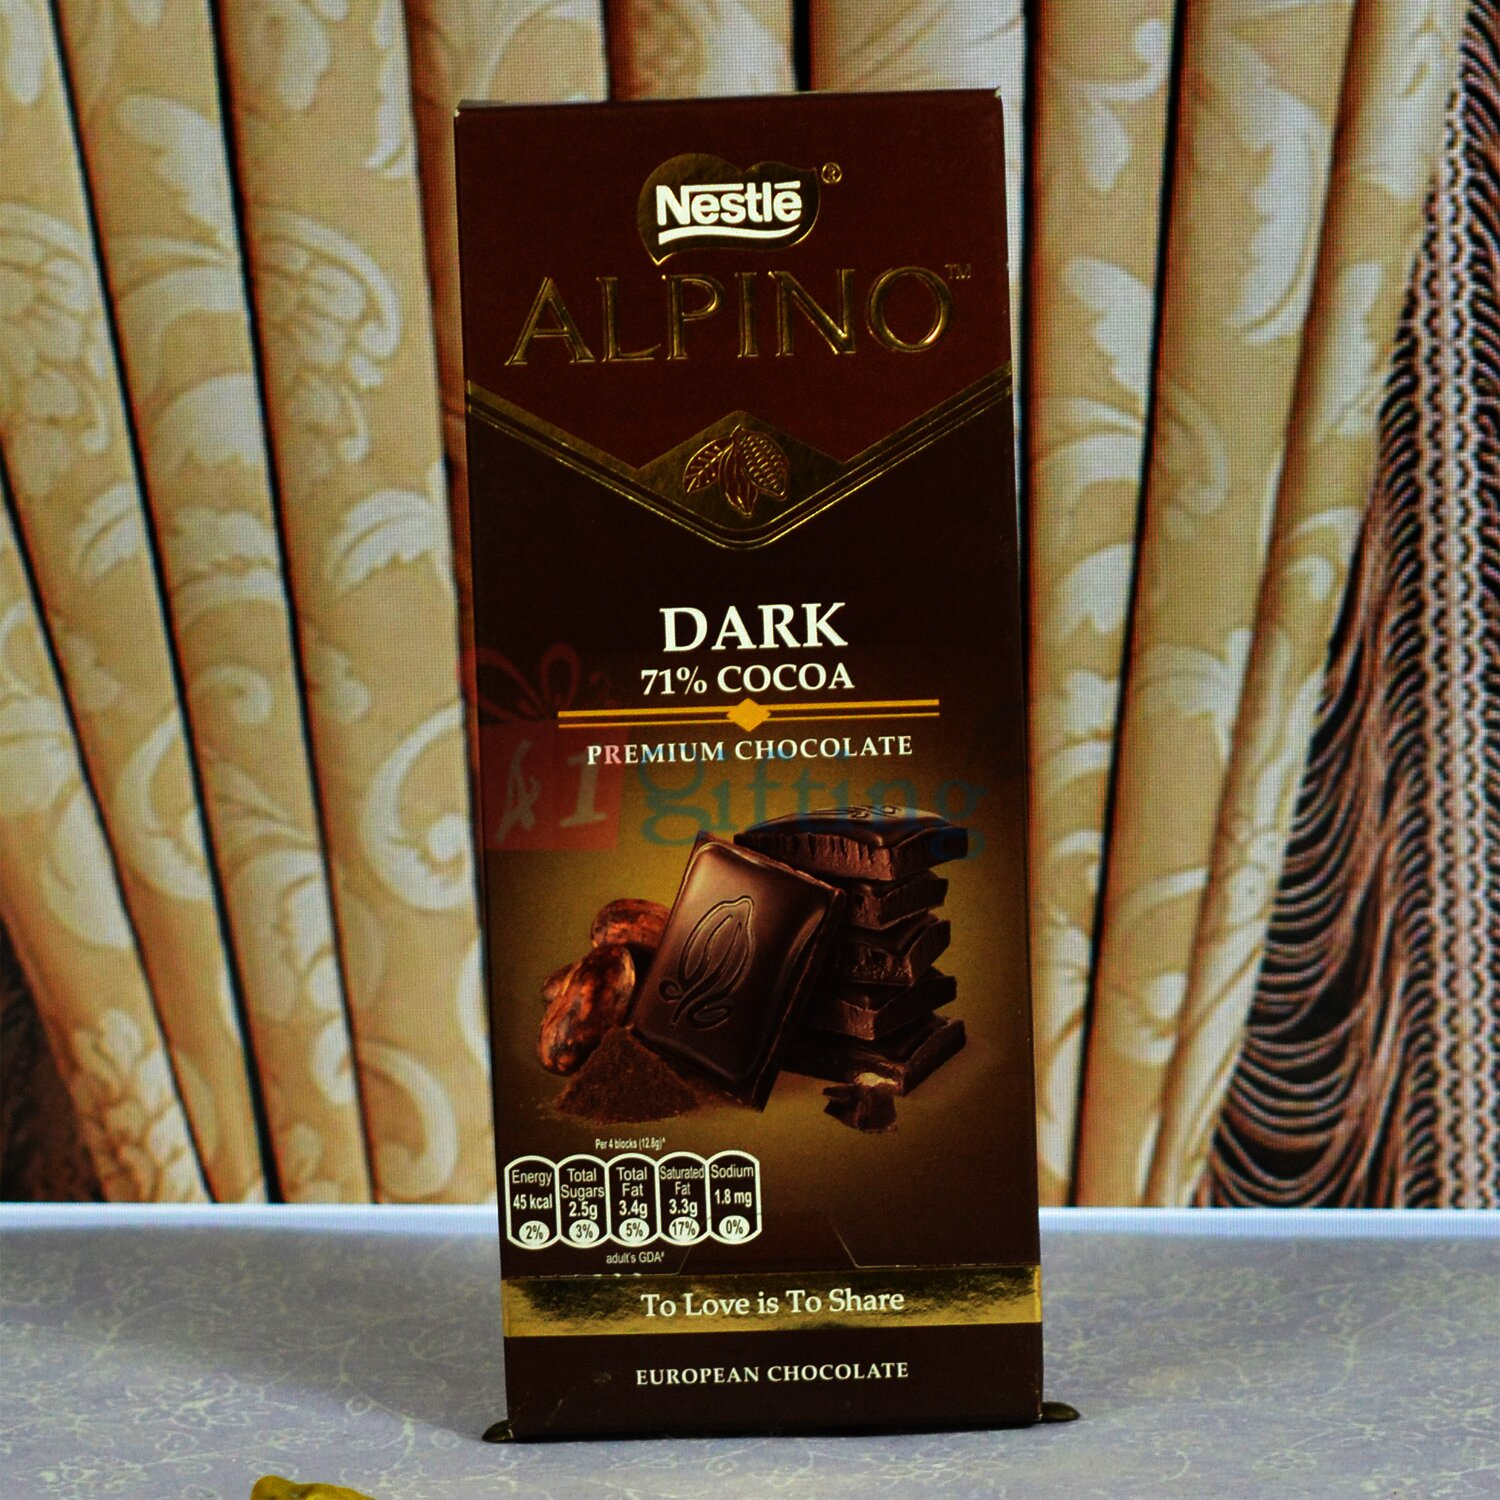 Nestle Alpino Dark Premium Chocolate